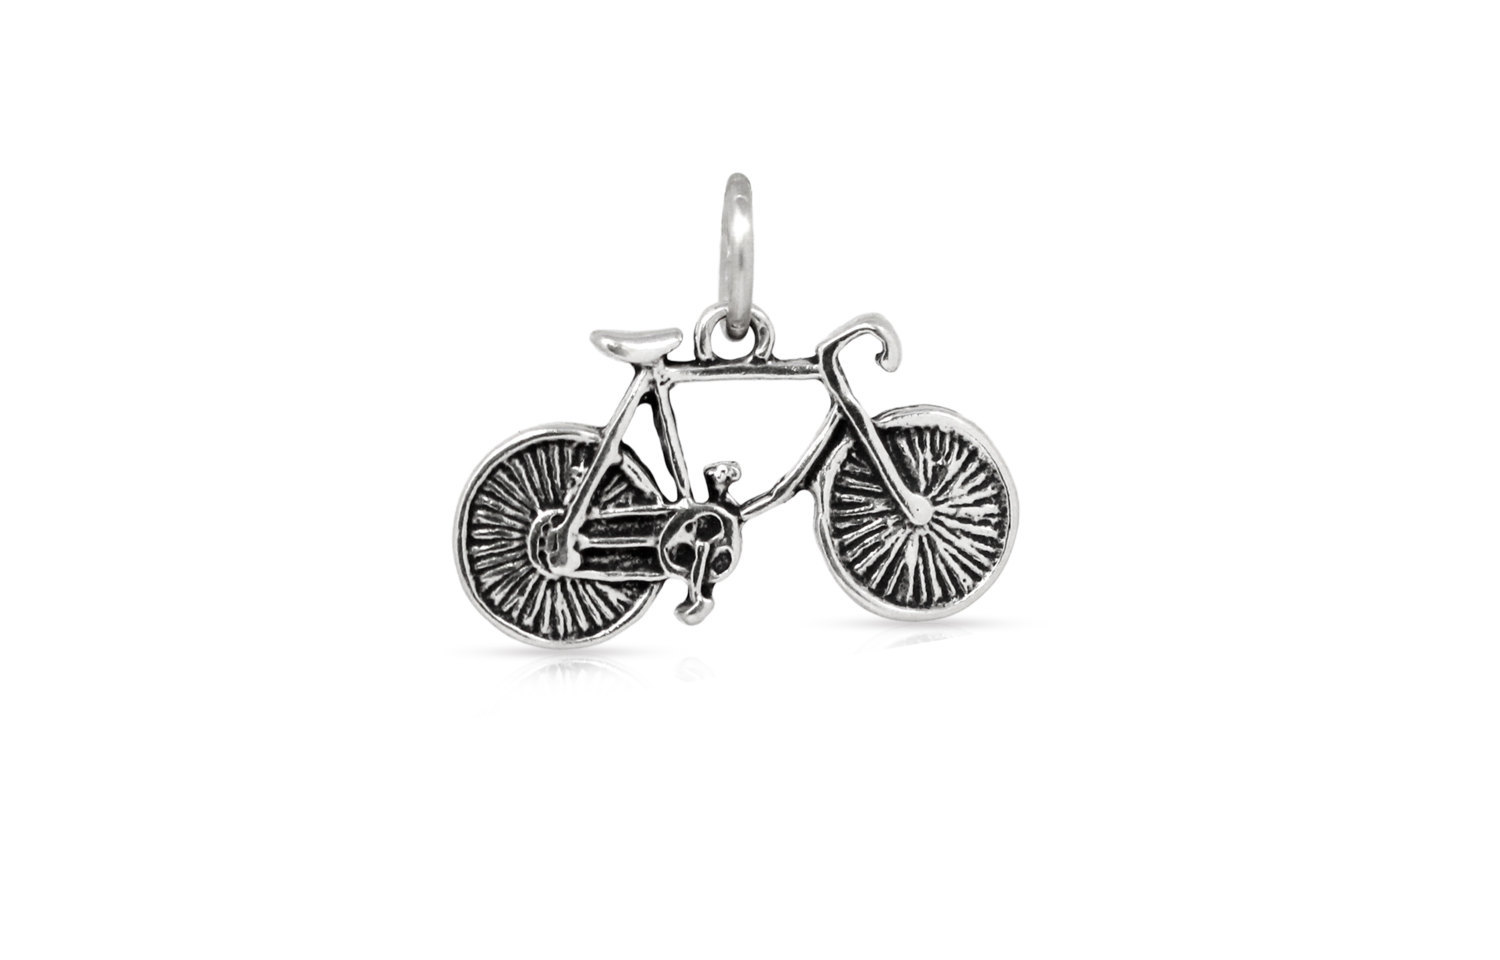 Primary image for Charm, Bicycle, Sterling Silver, 11.5x19mm, Pkg Of 1pc (3283)/1